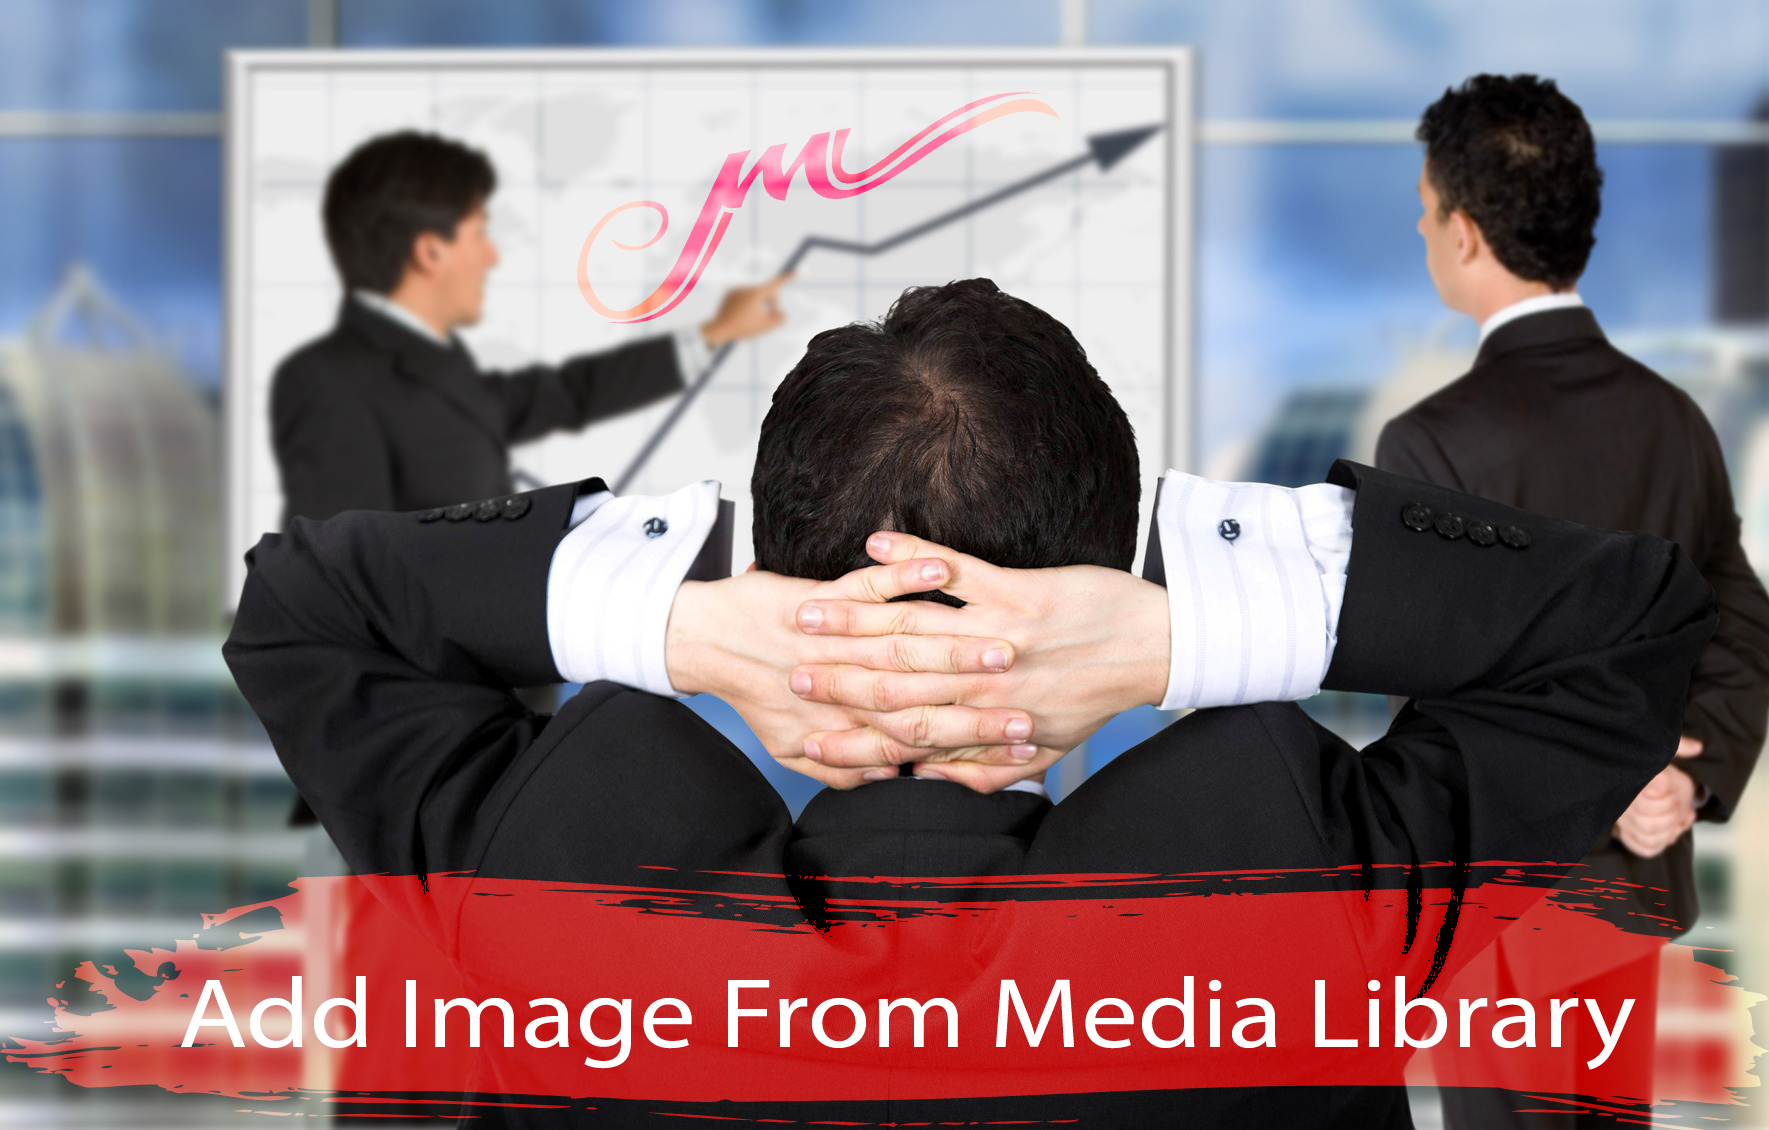 Add Image from Media Library